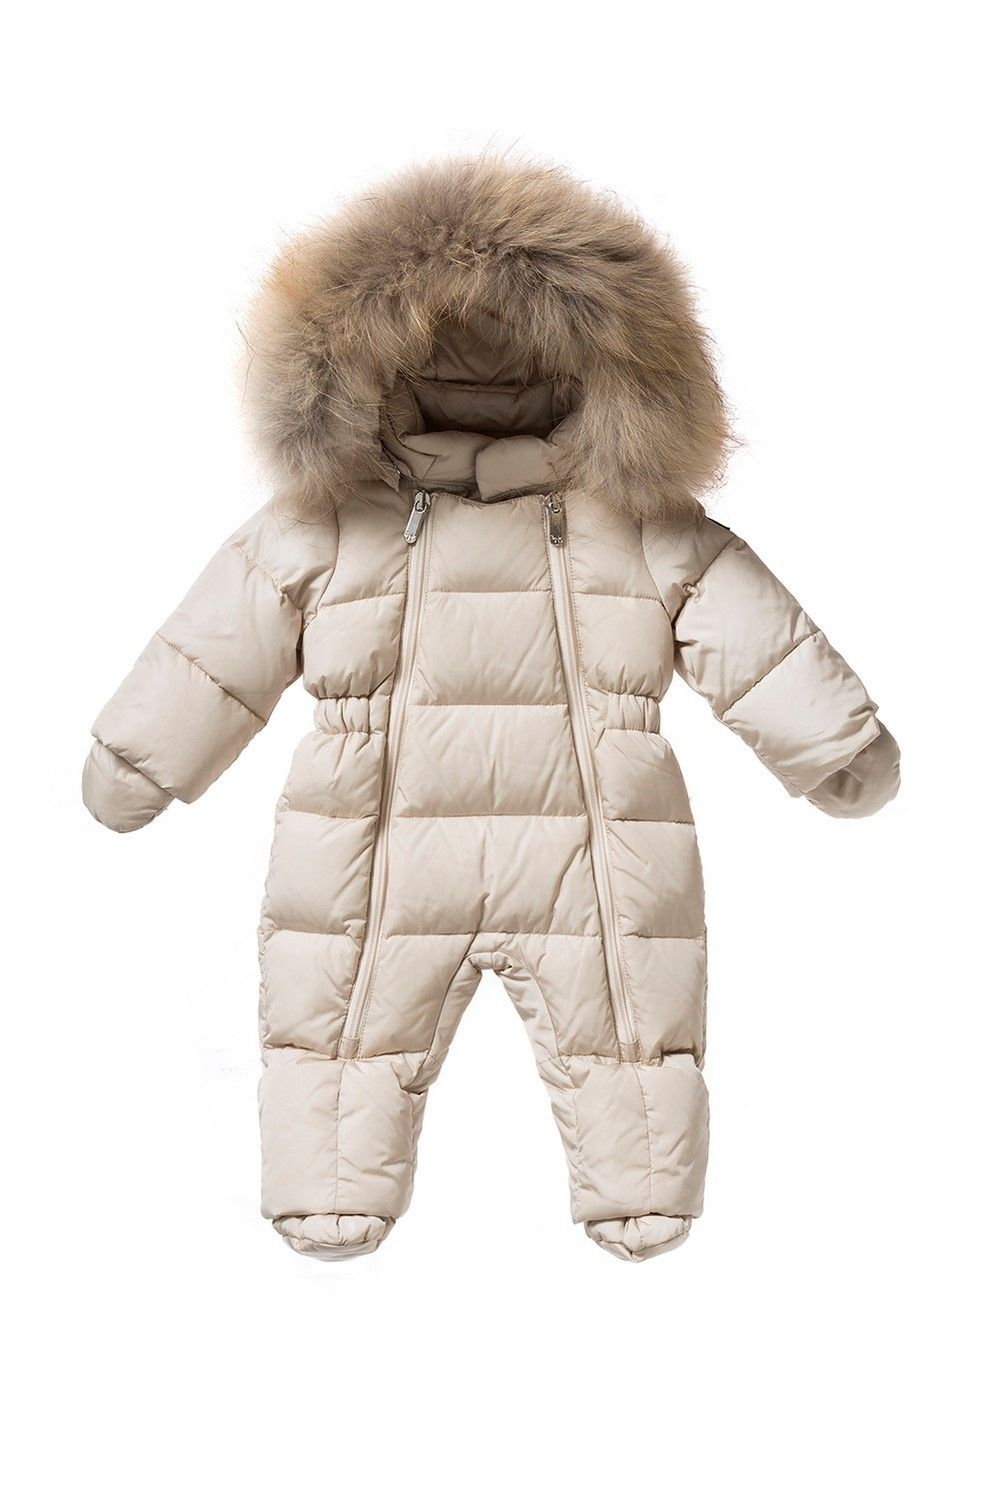 a577c2a33b9b Italian Luxury DOWN-FILLED SNOWSUIT WITH FUR IN BEIGE AND SAND